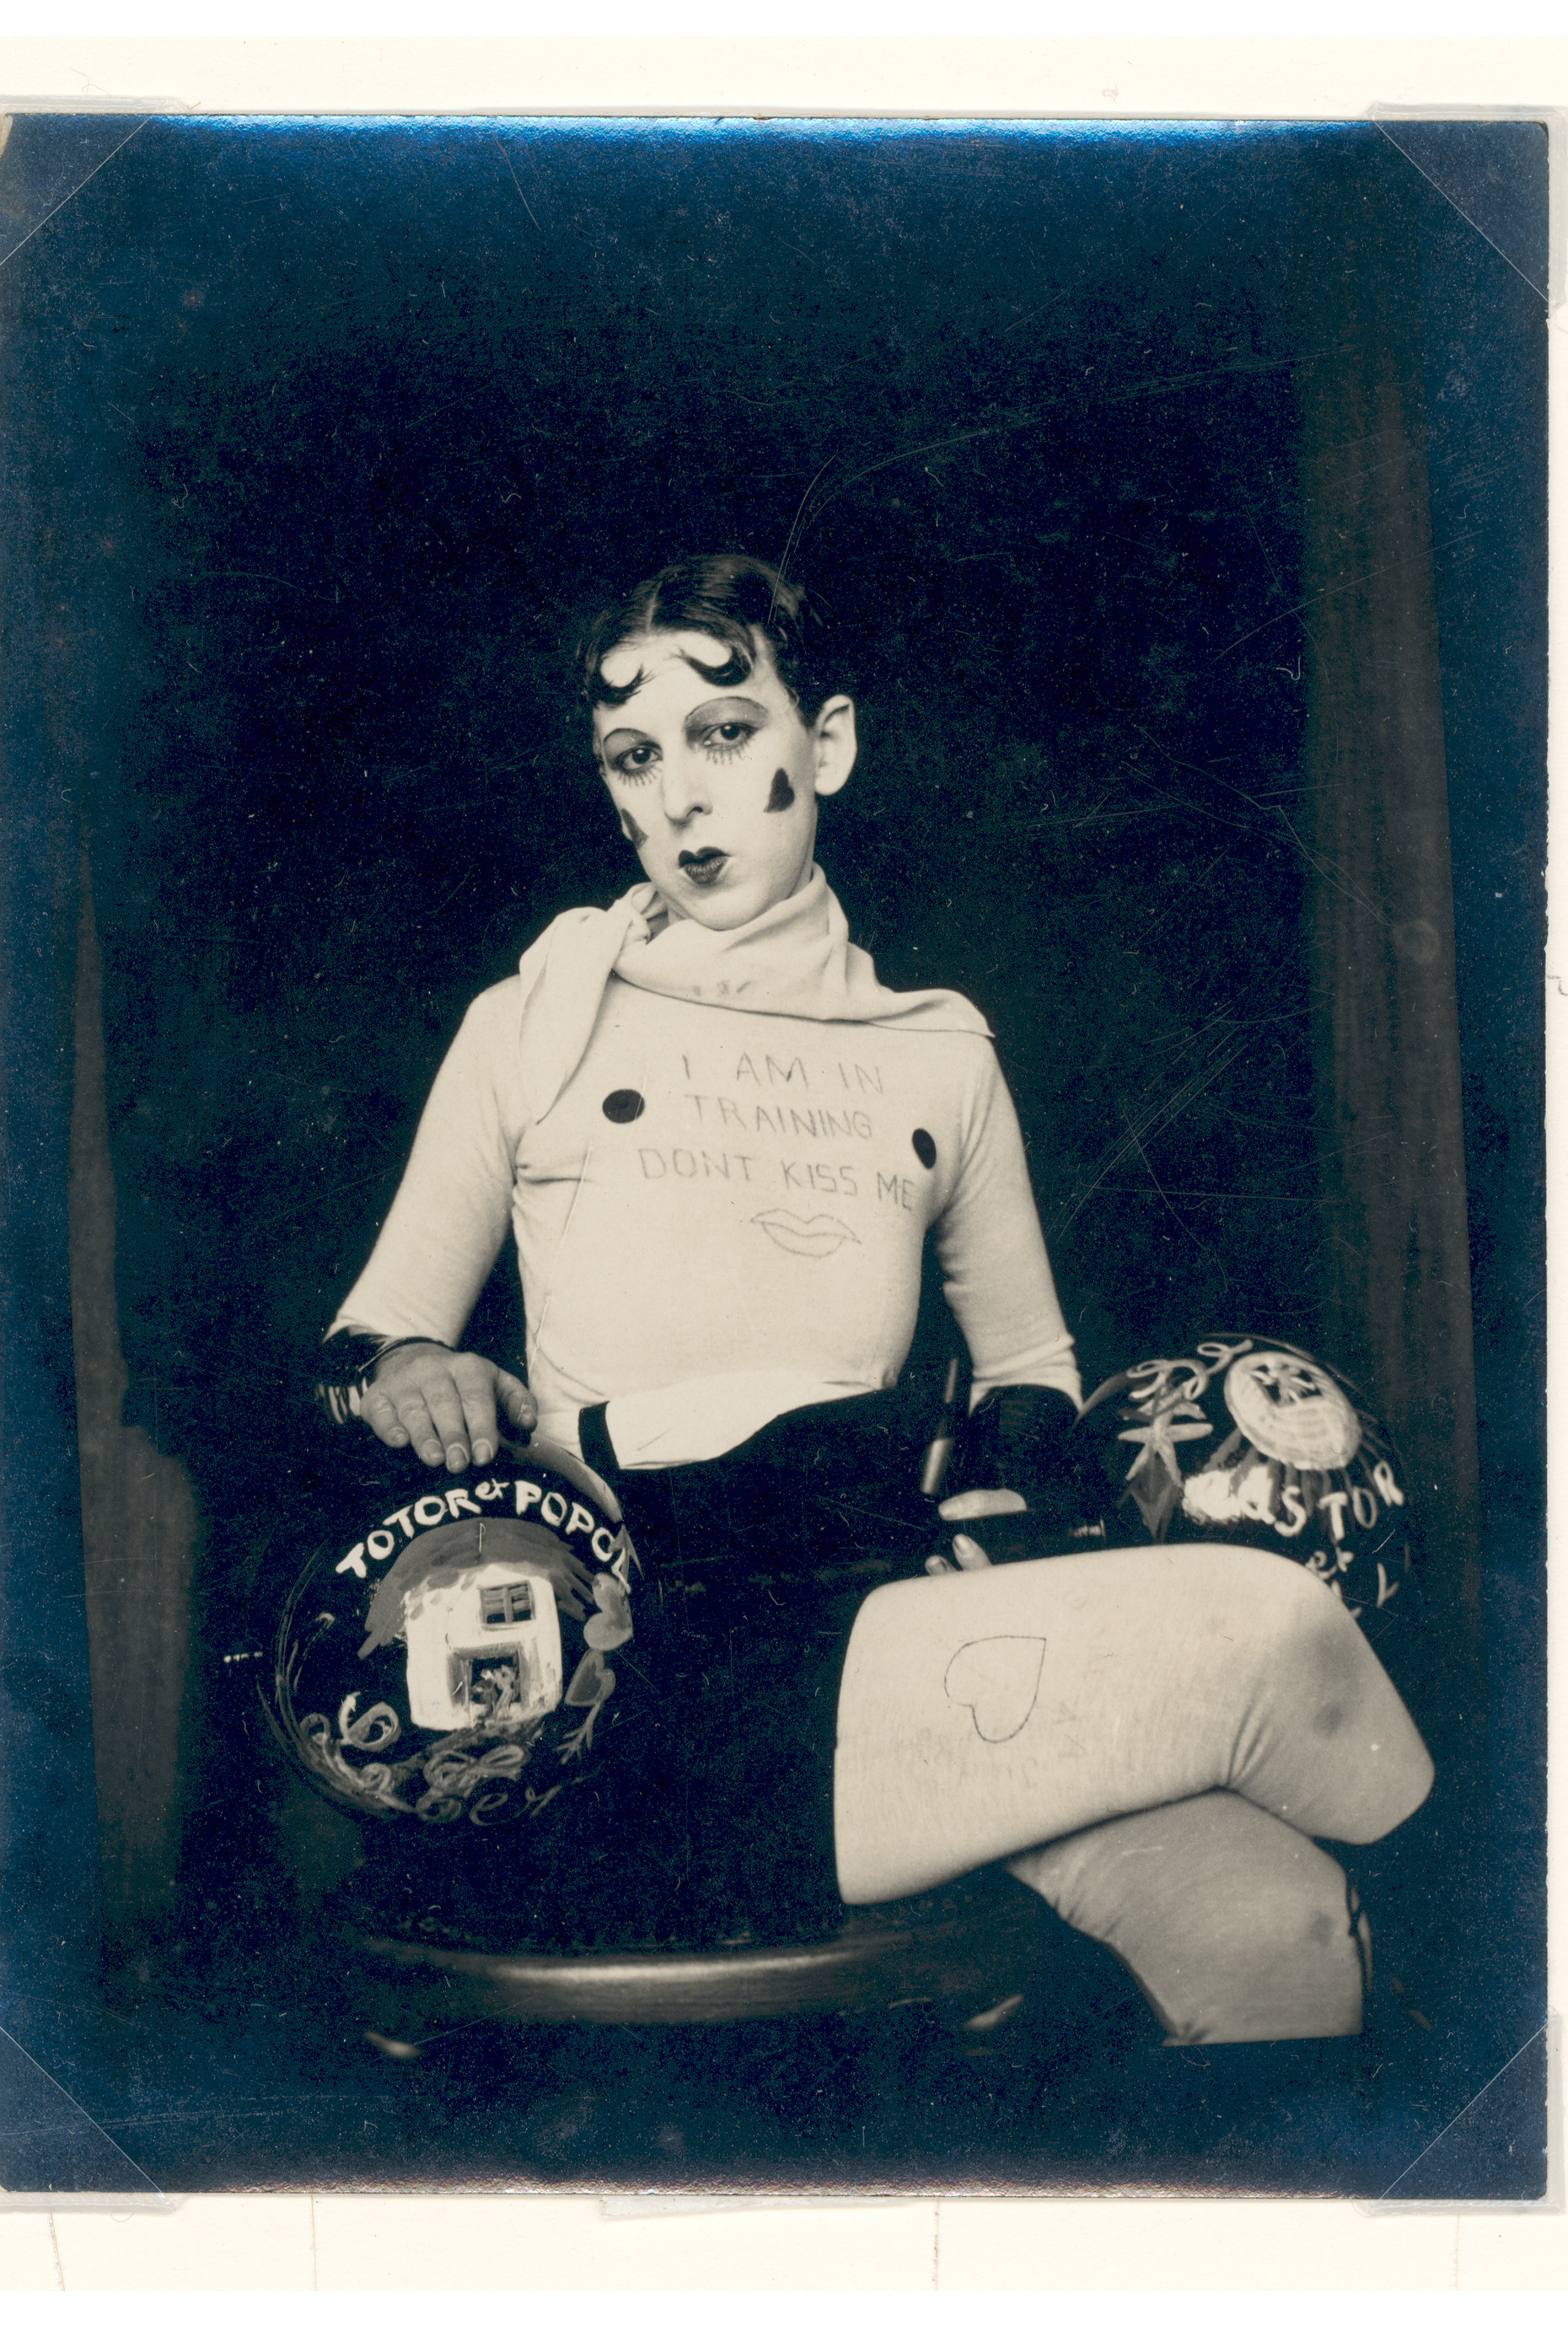 Claude Cahun, I am in training, don't kiss me, 1927, Courtesy and copyright Jersey Heritage